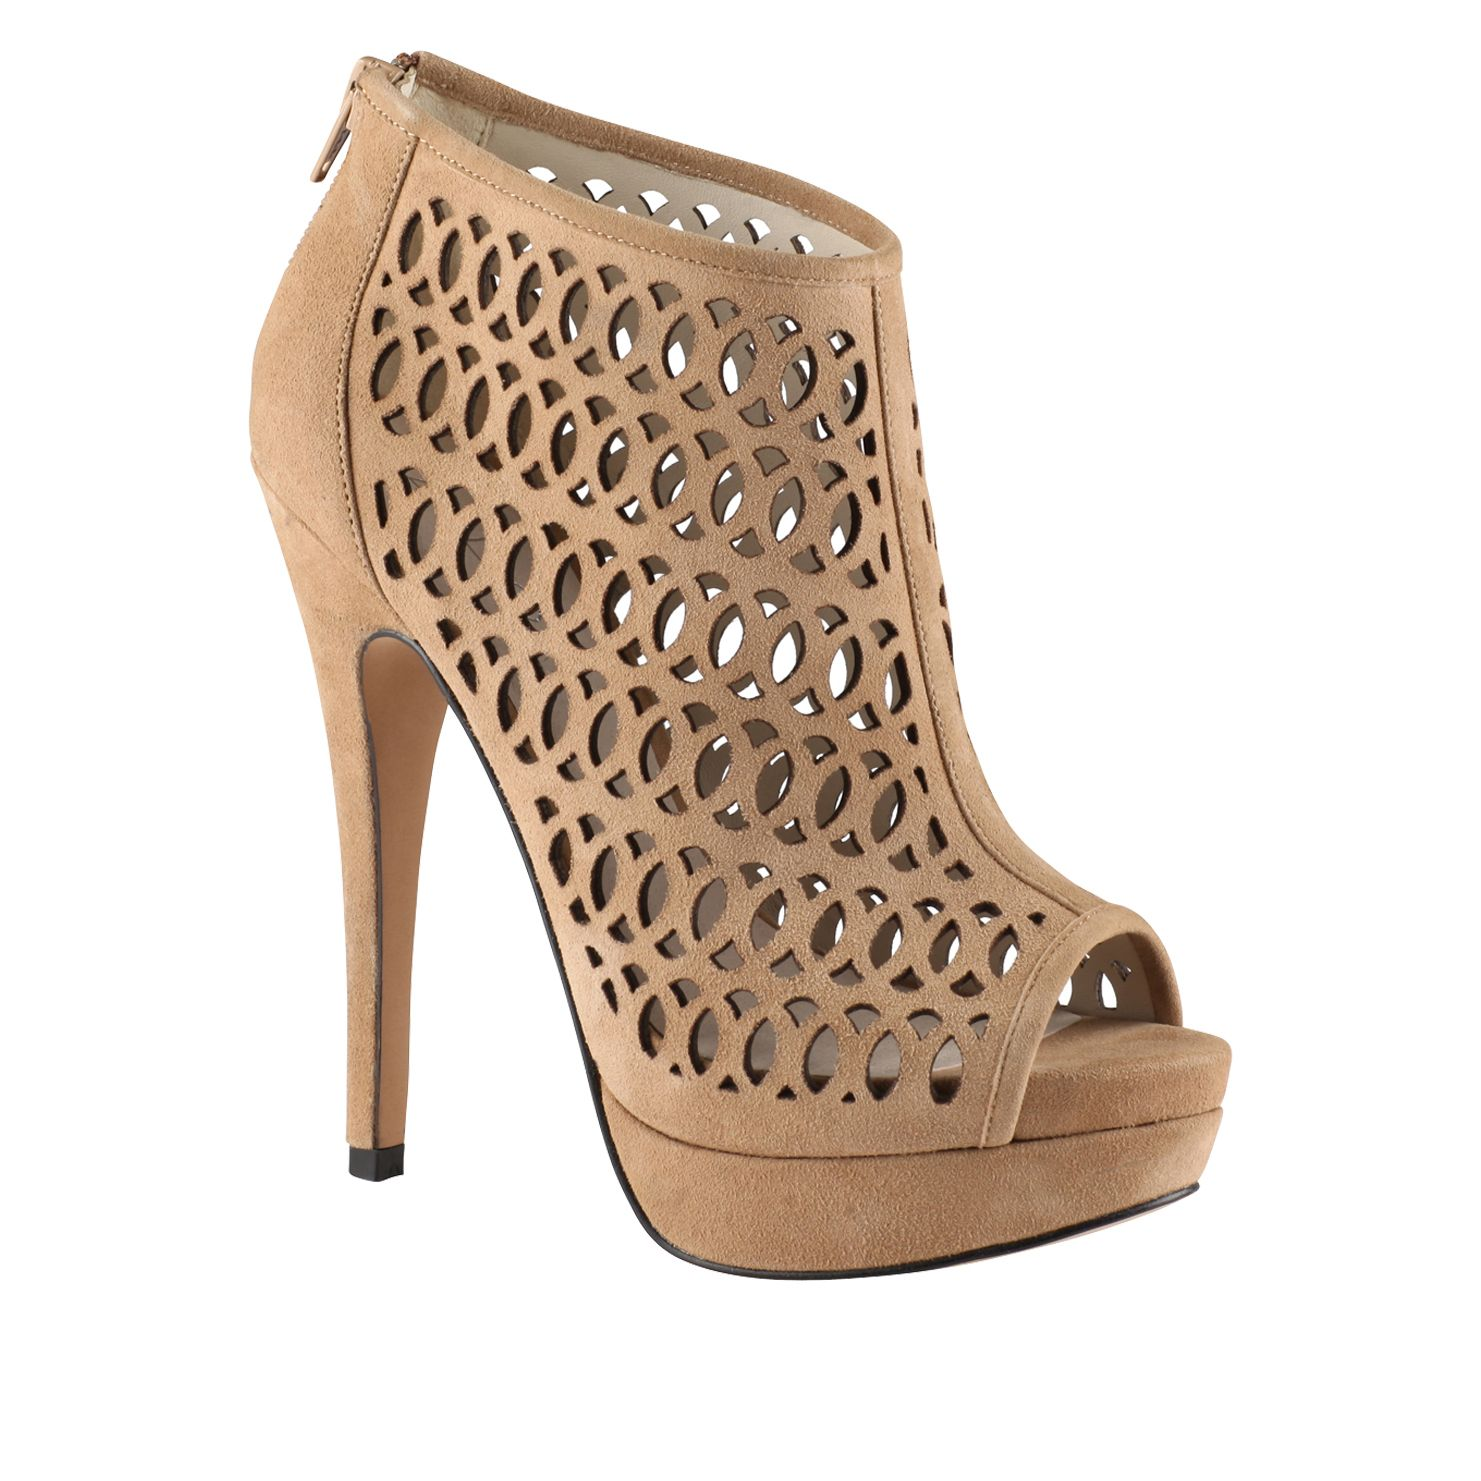 Fulginiti laser cut peep toe court shoes